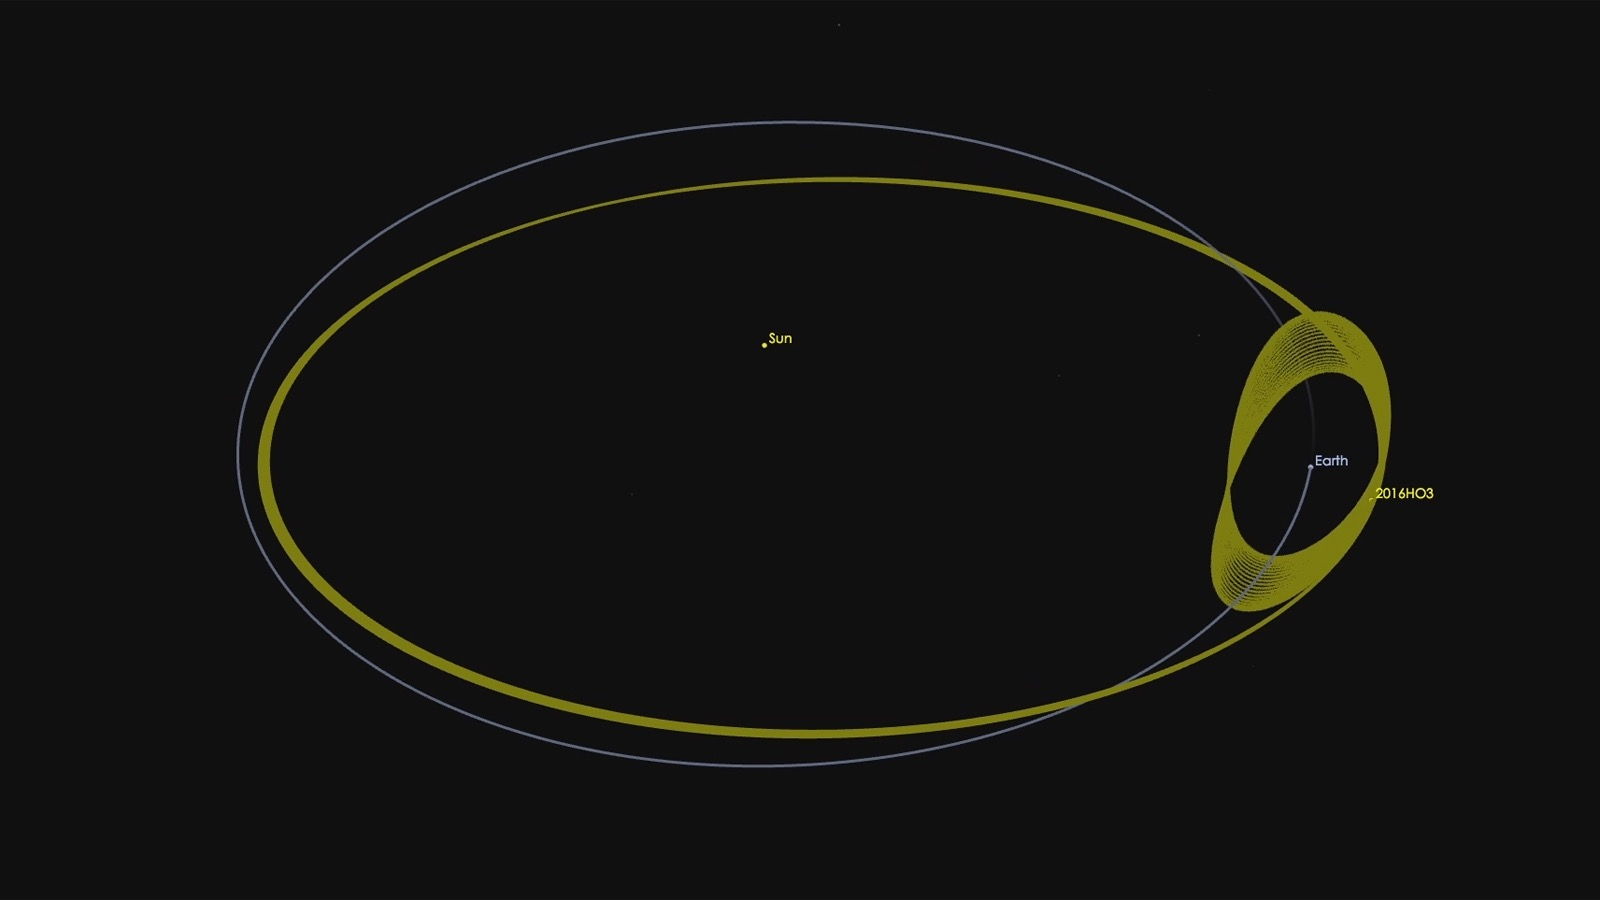 NASA shows android 2016 HO3's orbit relative to the sun and earth.